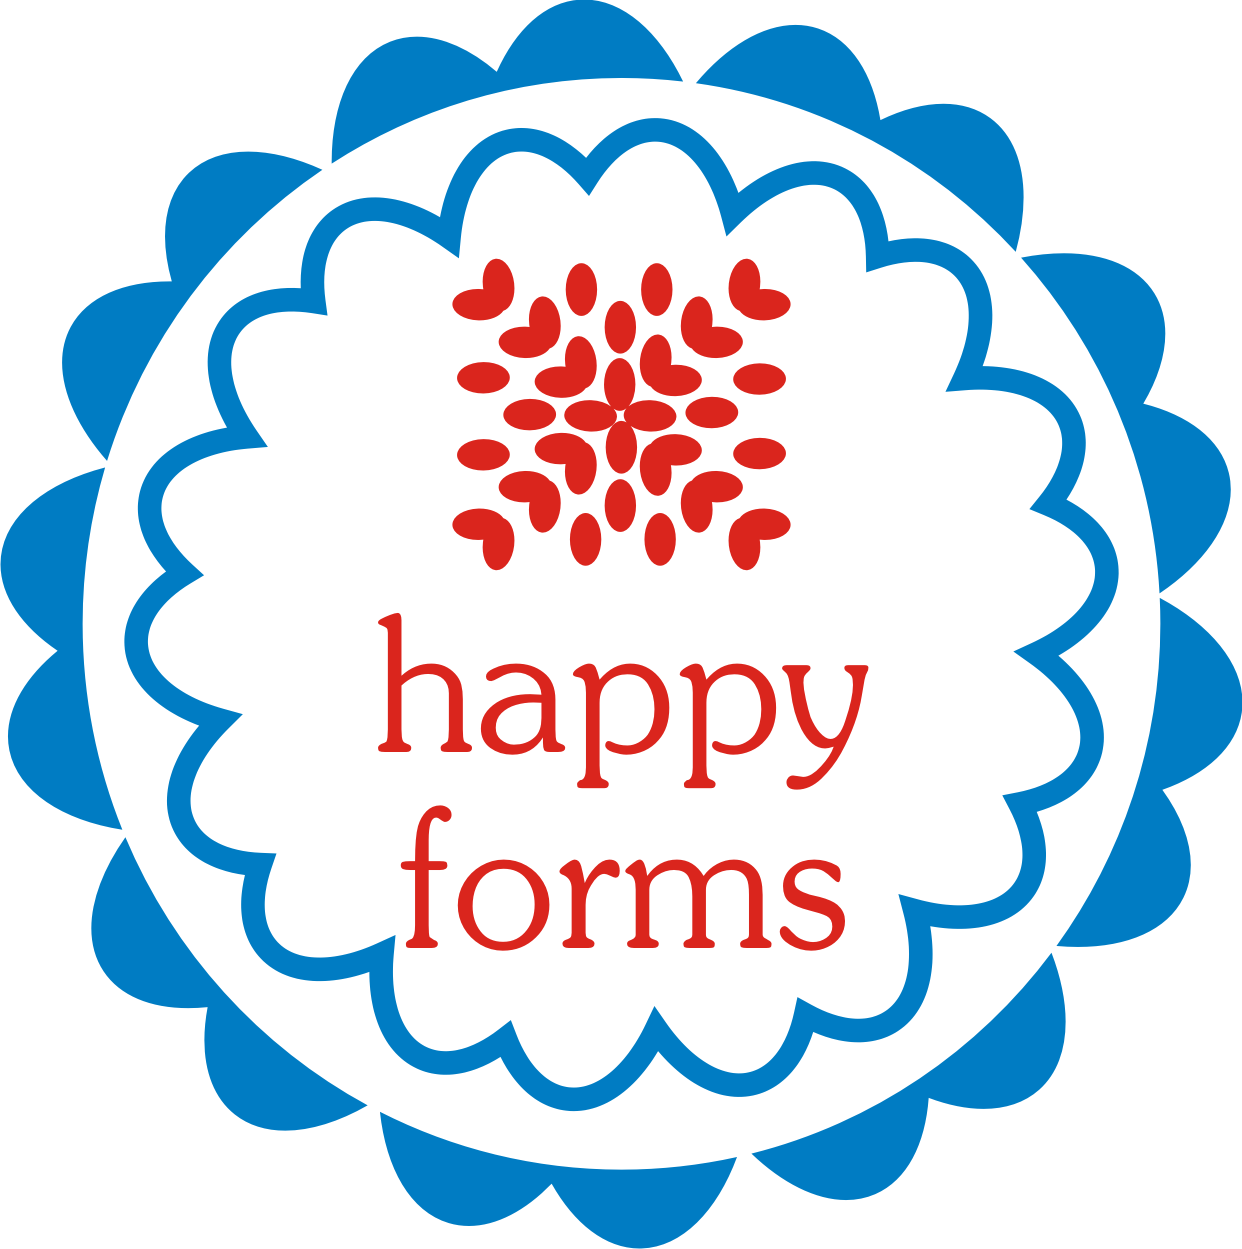 www.happy-forms.com